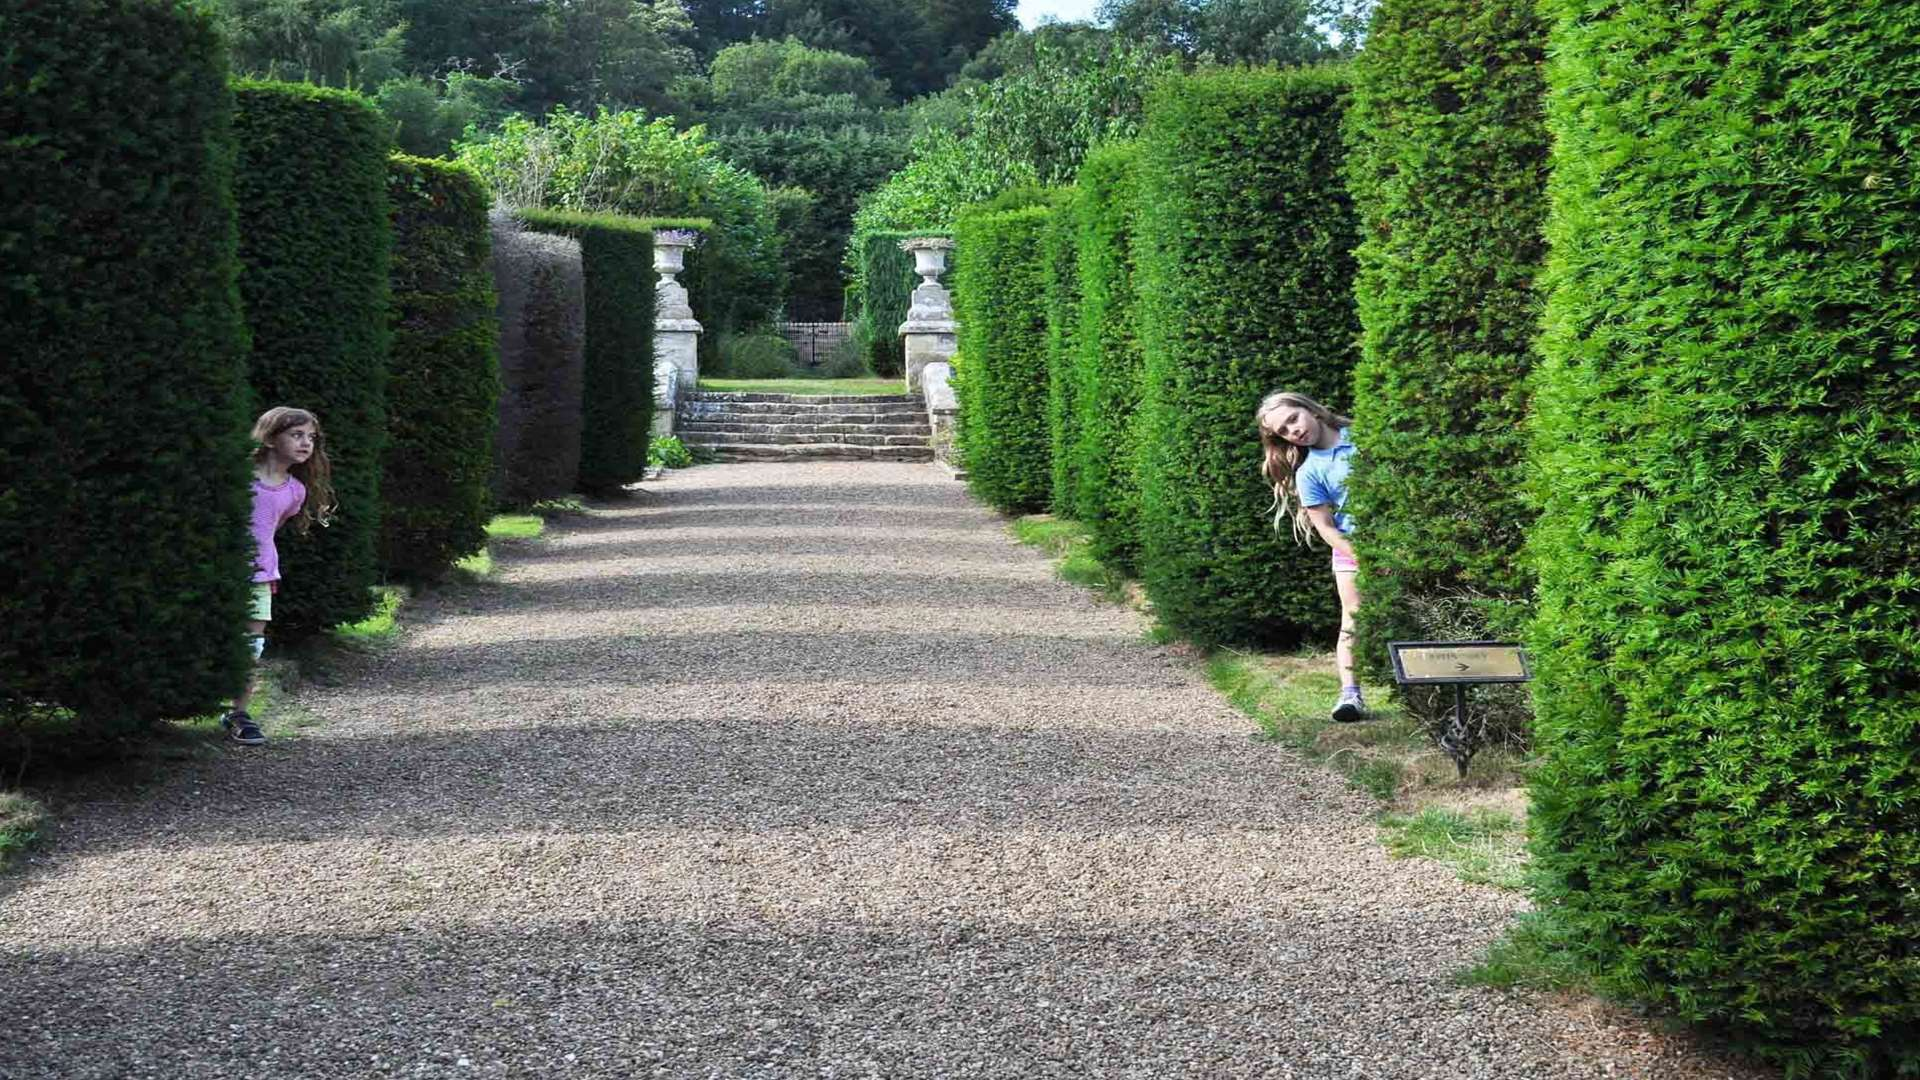 There's plenty to explore at Groombridge Place